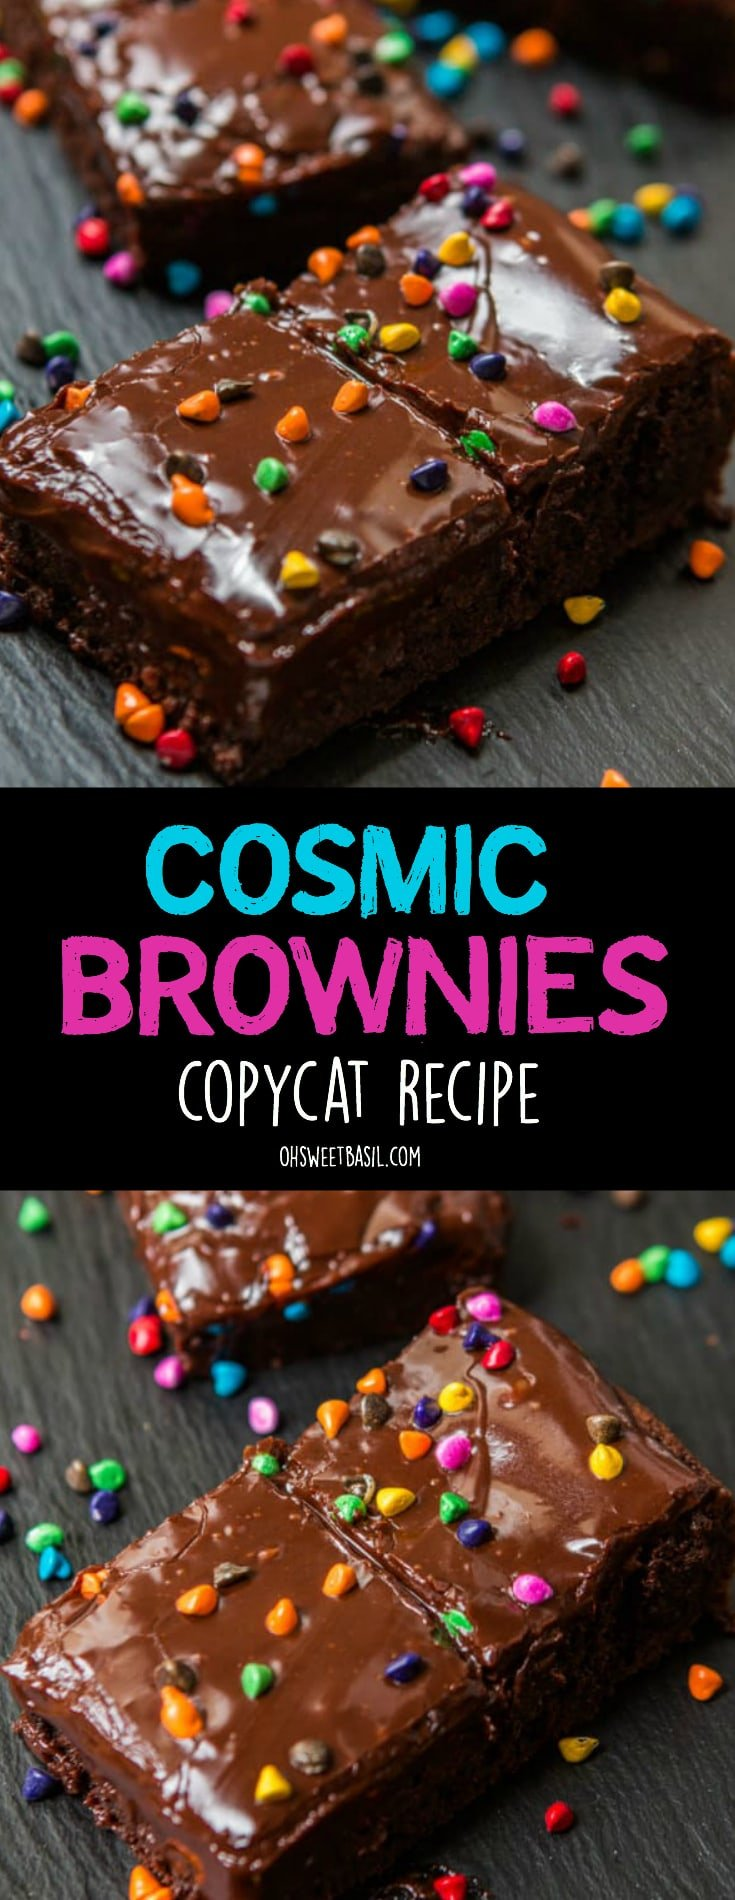 A fudgy brownie with little pieces of rainbow chip candies to make the best Cosmic Brownies Copycat Recipe